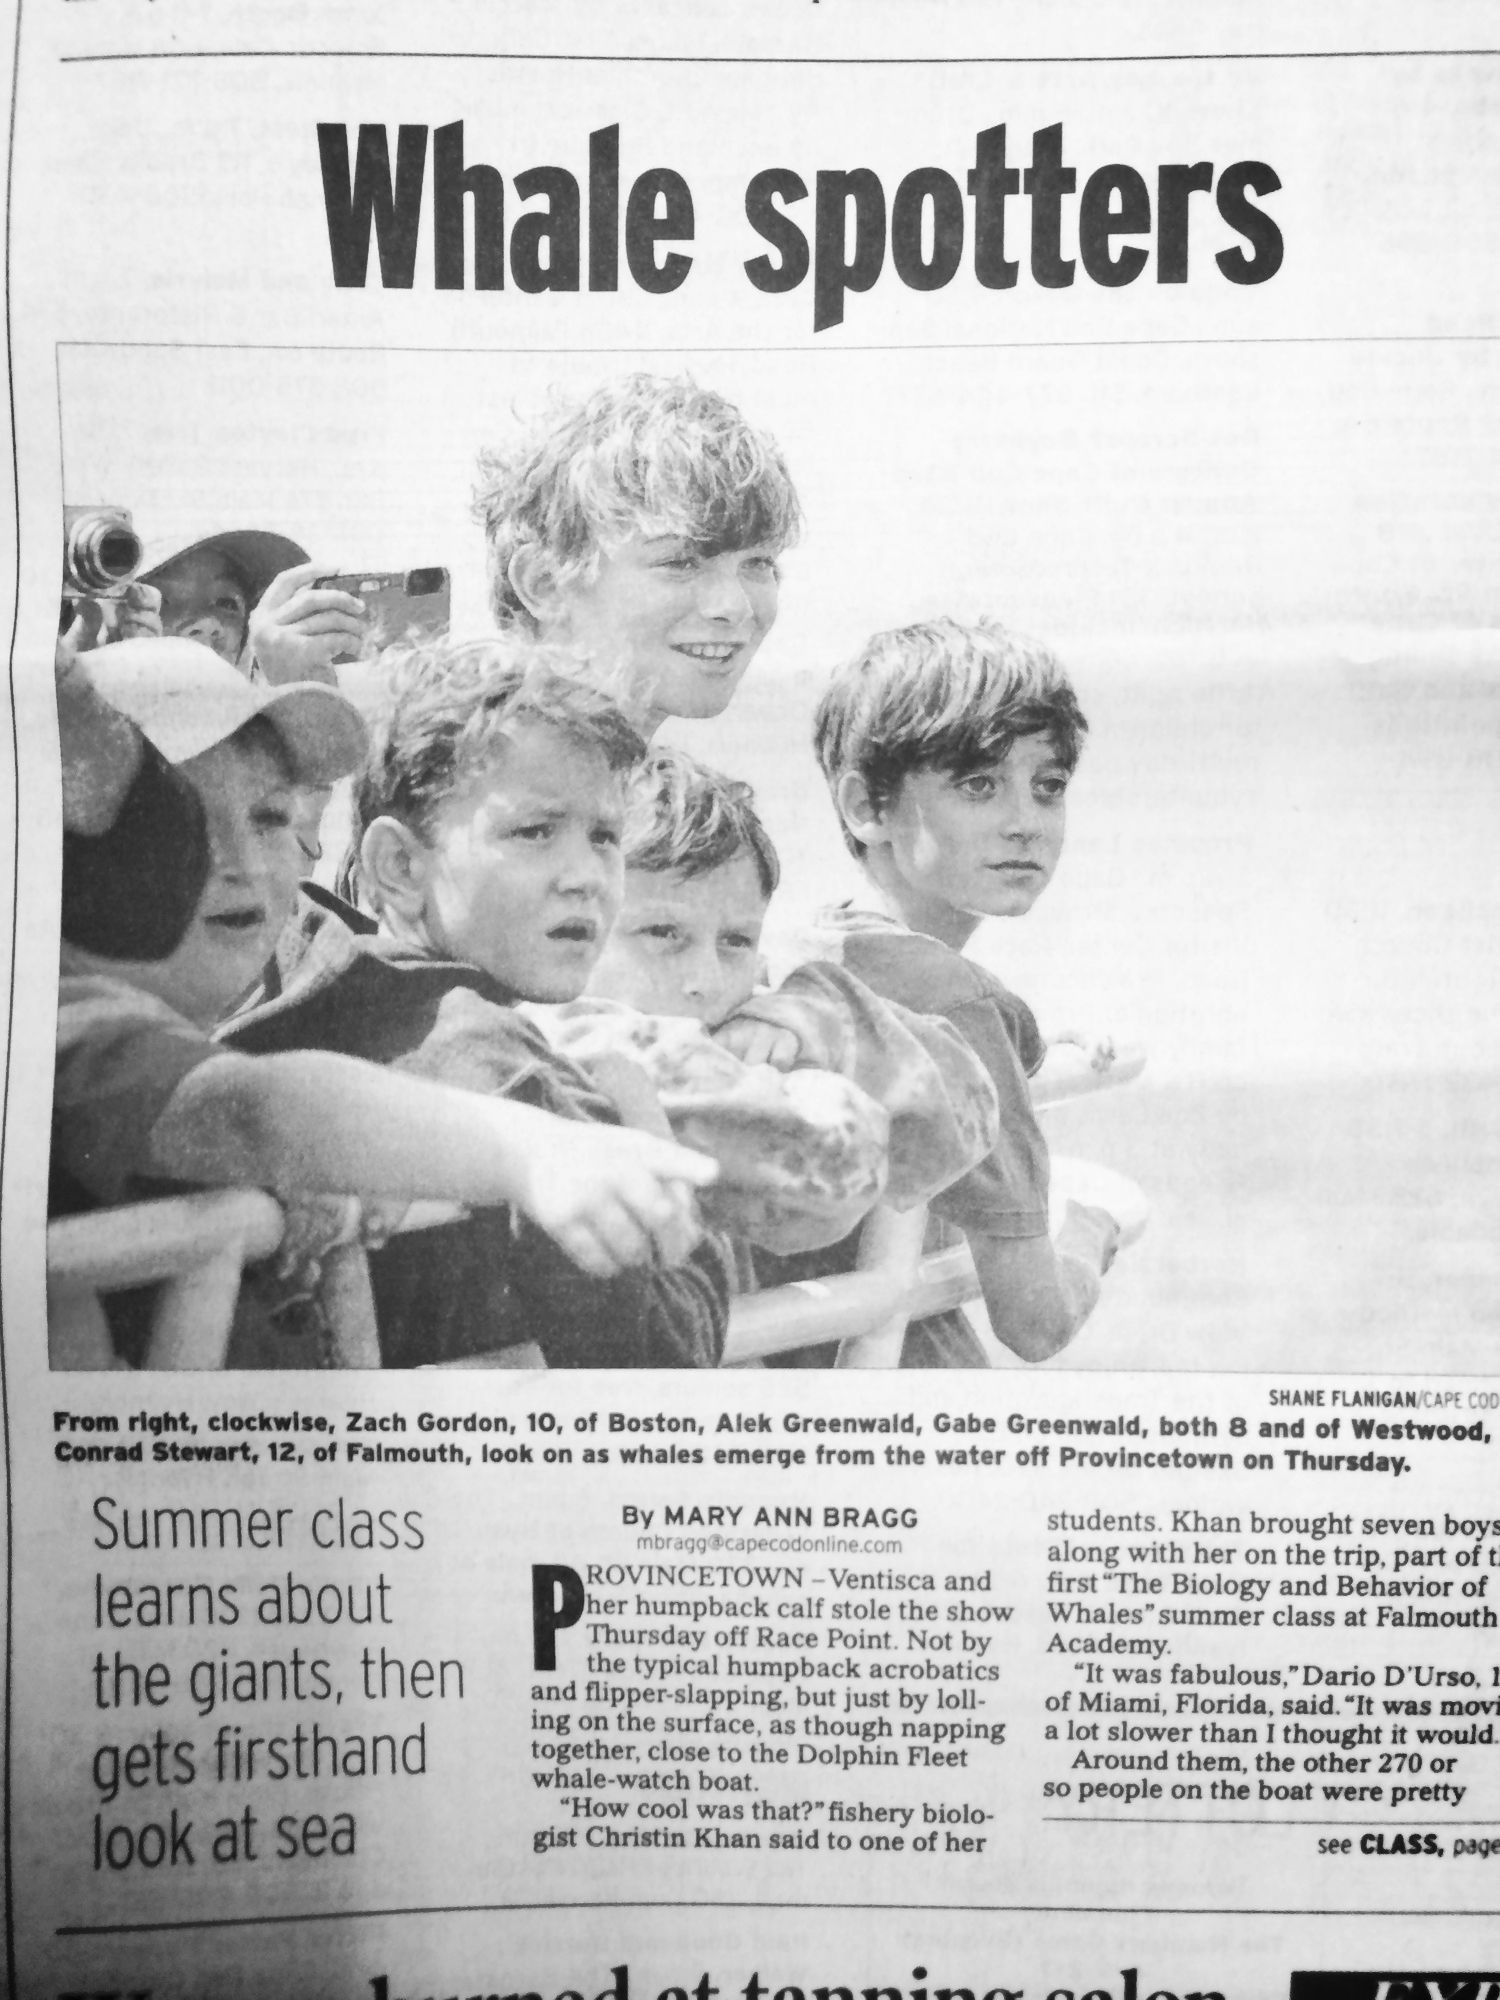 Christin Khan's summer class 'Whales' at Falmouth Academy makes the front page of the Cape Cod Times!